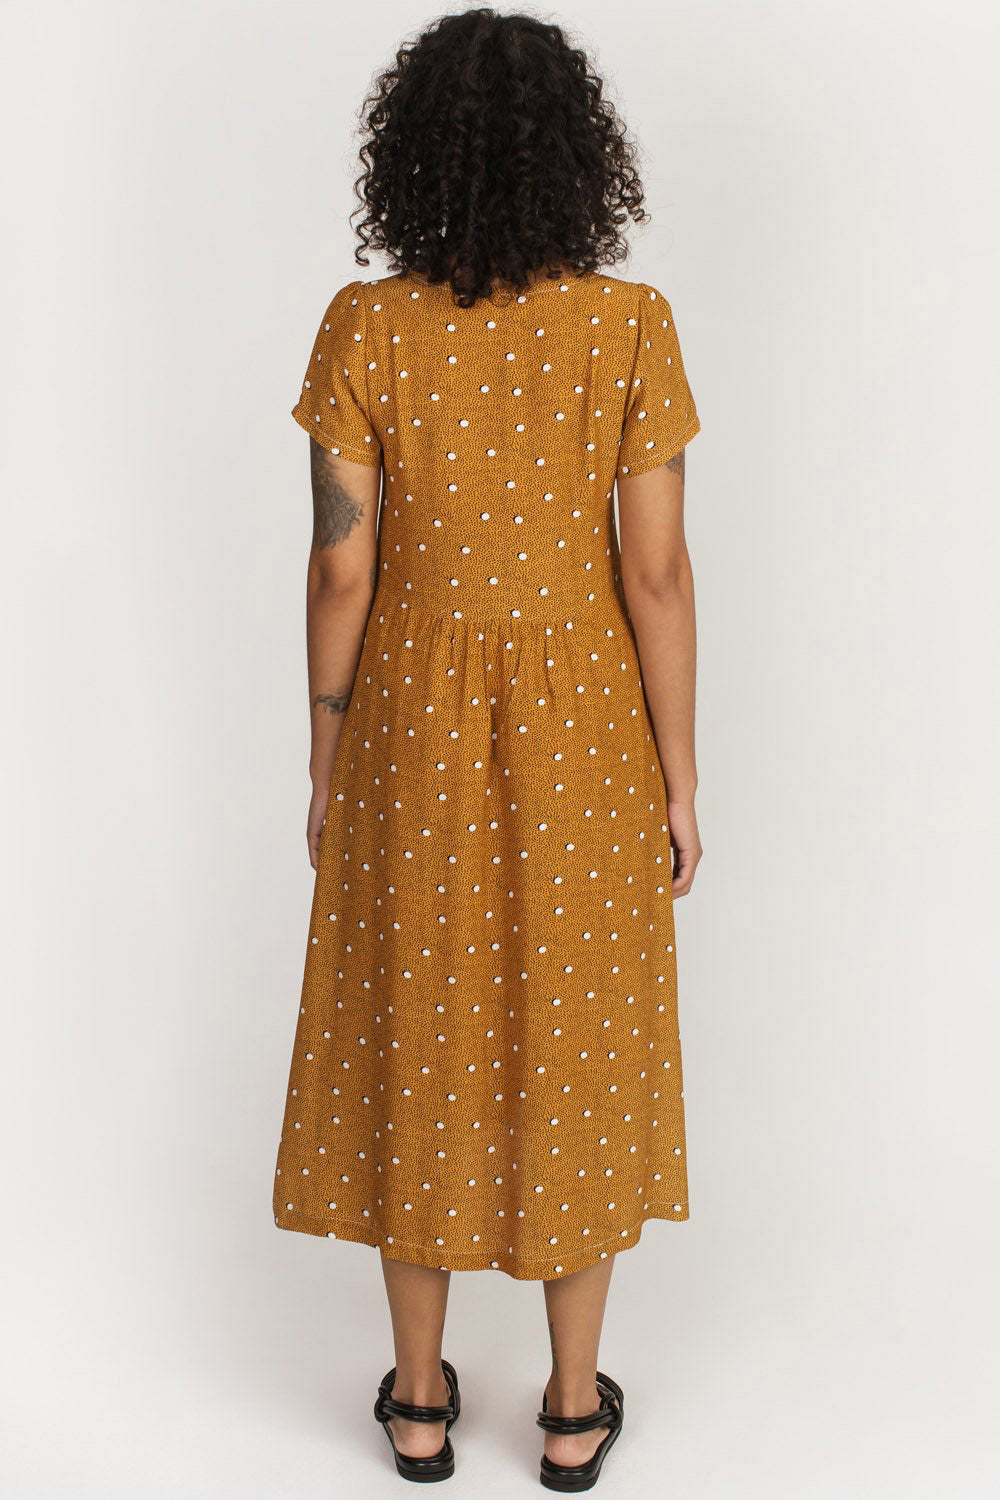 Strathcona Dress Allison Wonderland Yellow Polka Dot  Back